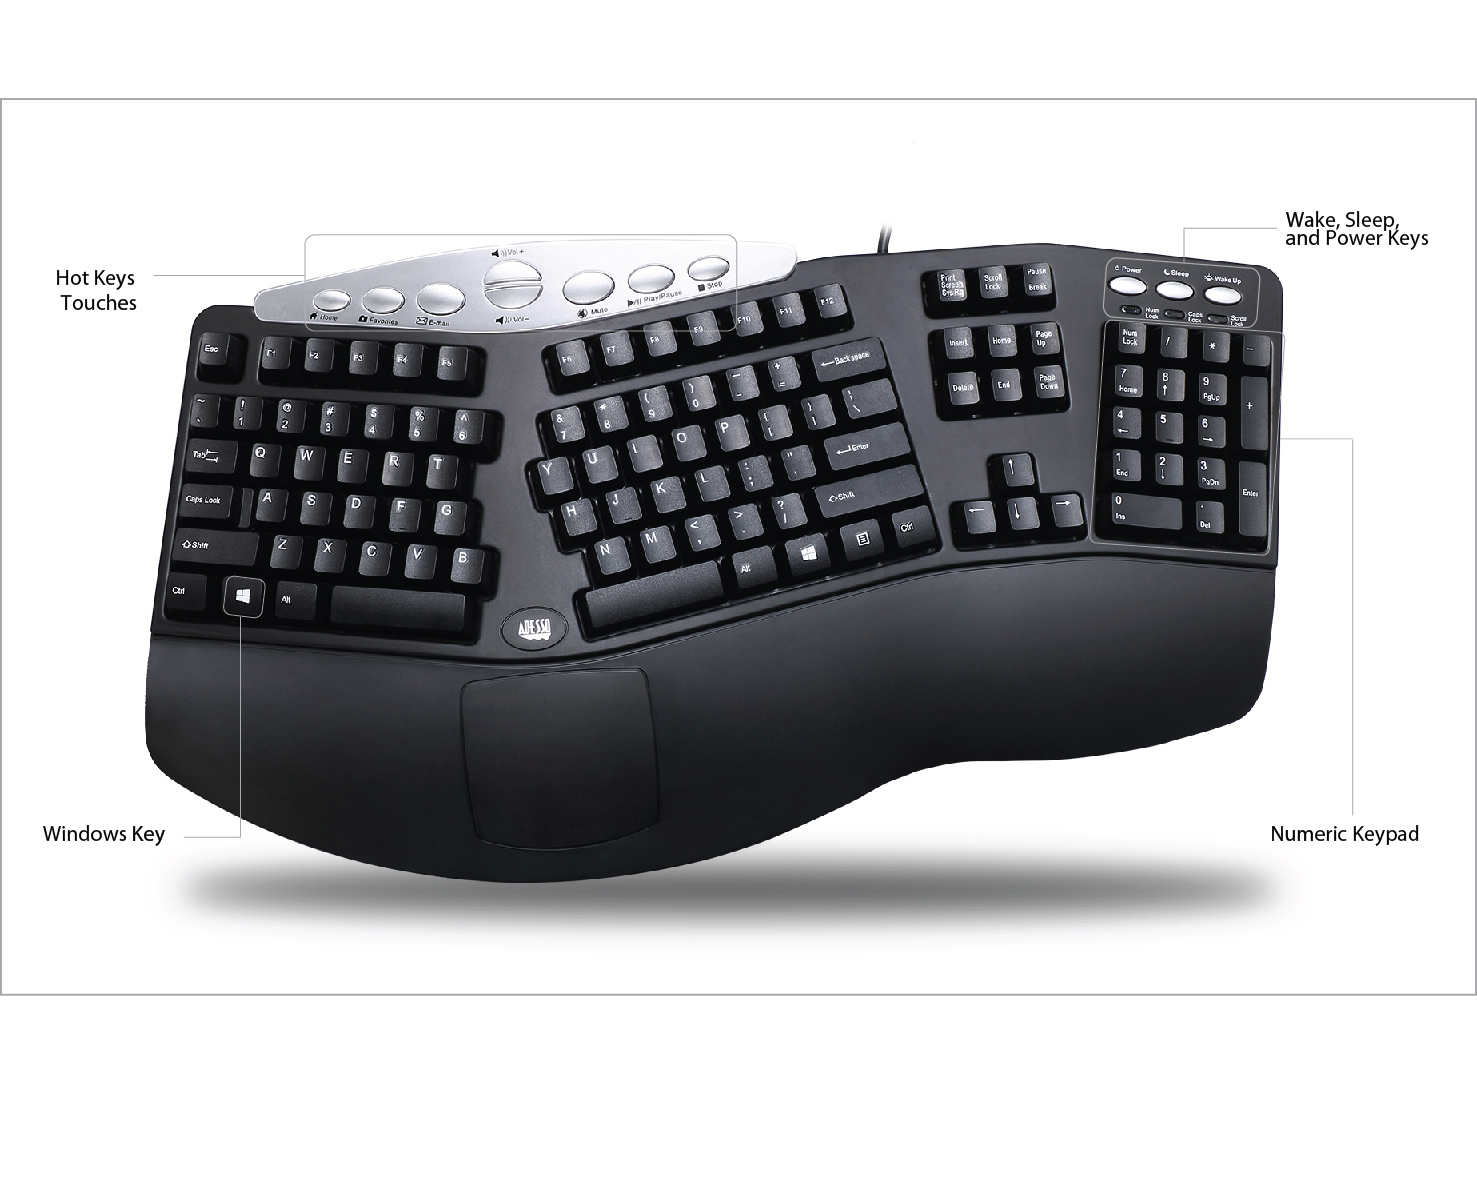 Surprising Tru Form Media 208 Media Contoured Ergonomic Keyboard Adesso Wiring Cloud Hisonuggs Outletorg